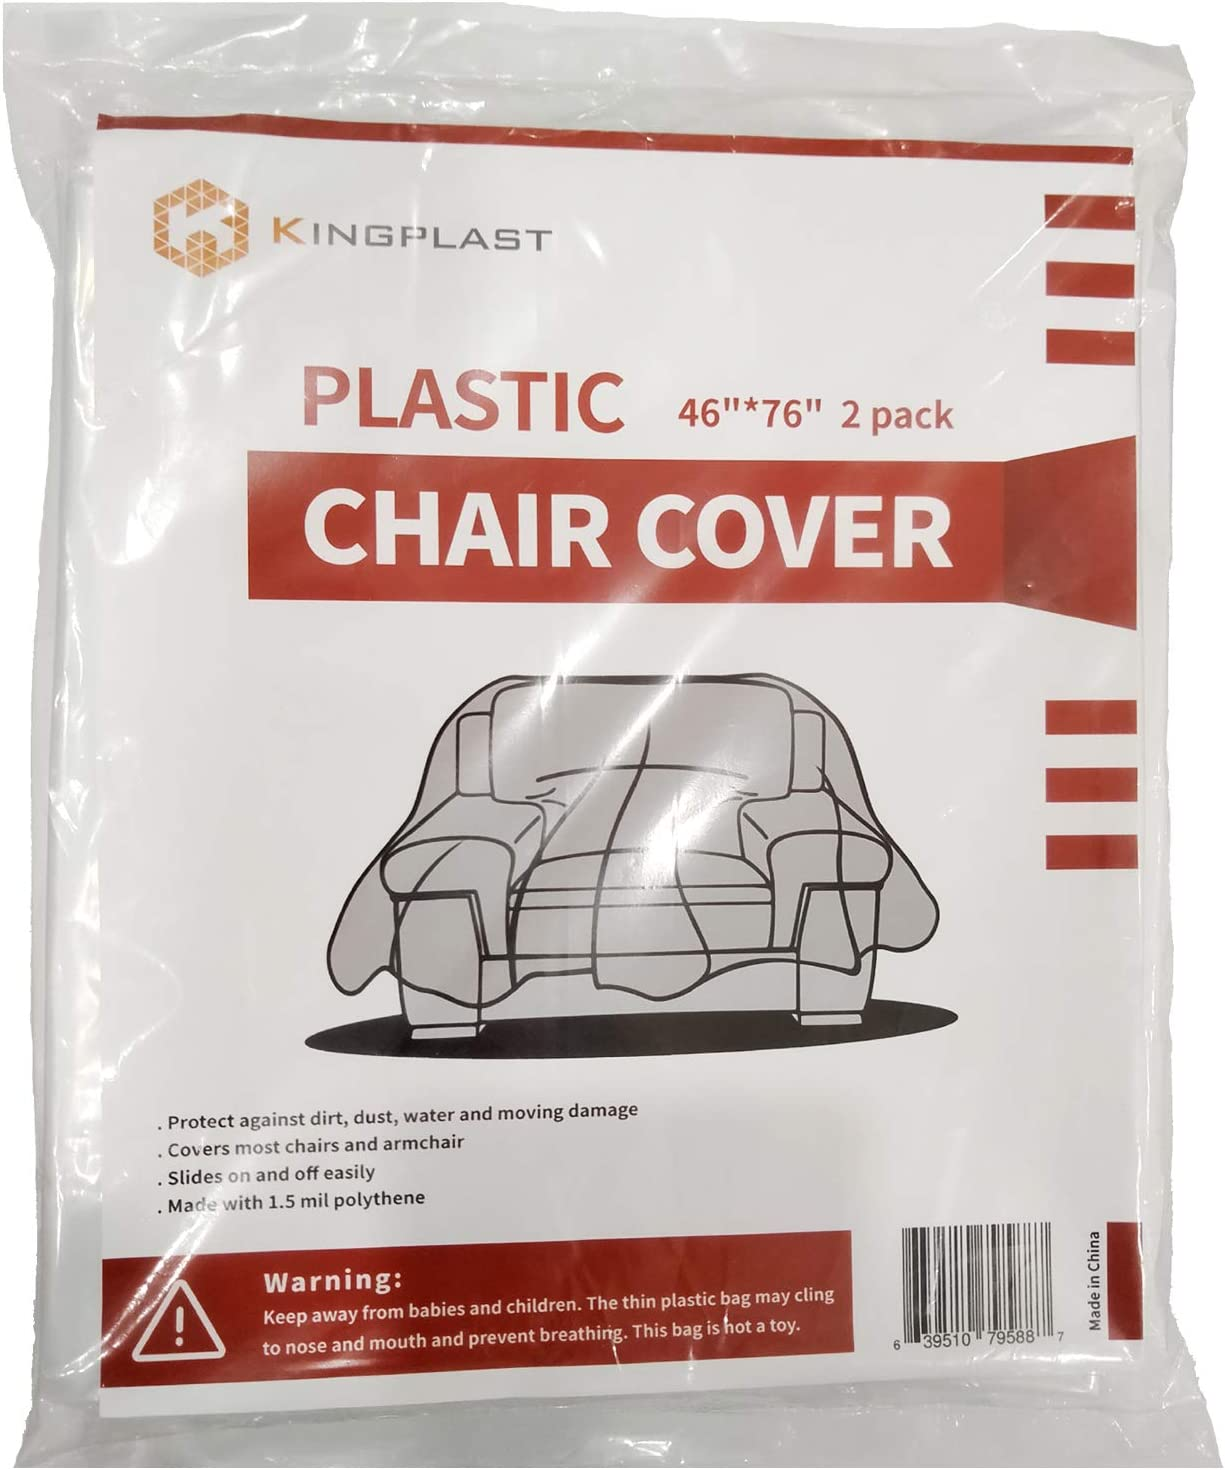 Kingplast 2 Pack Plastic Chair Cover for Moving and Storage, 46